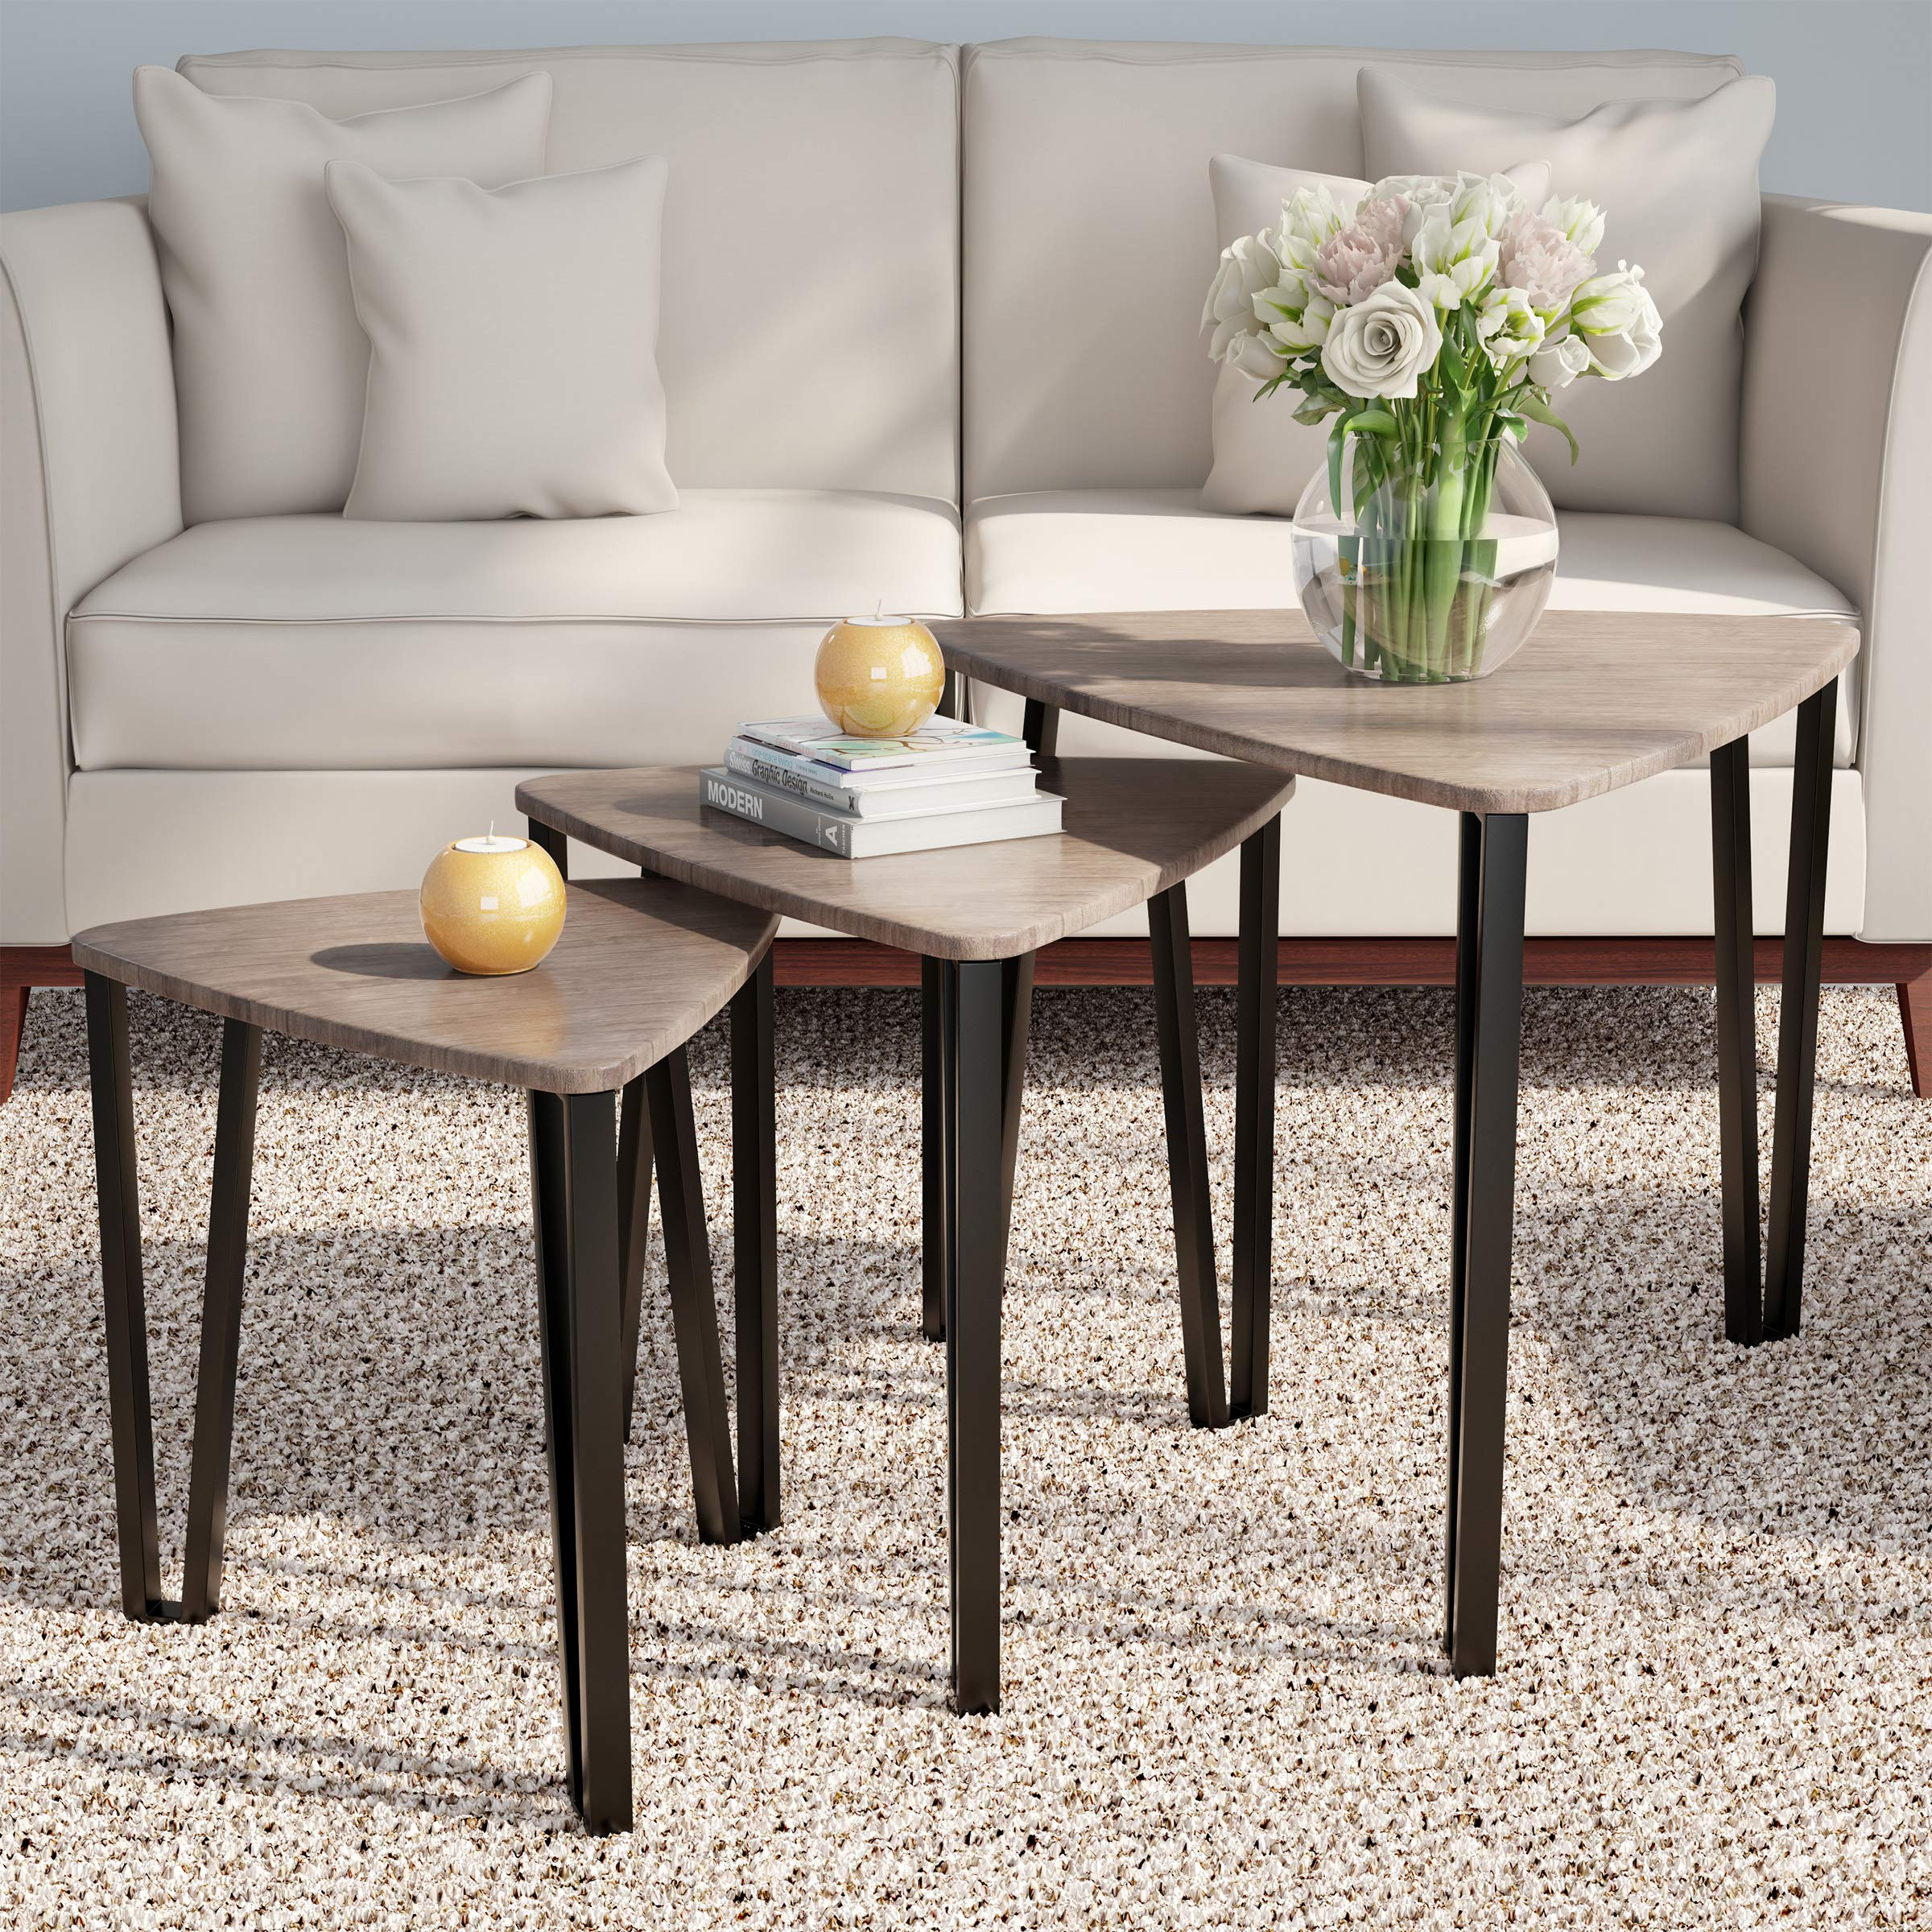 Home 80-FNT-6 Lavish Nesting Set of 3, Modern Woodgrain Look for Living Room Coffee Tables or Nightstands-Contemporary Accent Decor Furniture by HOME